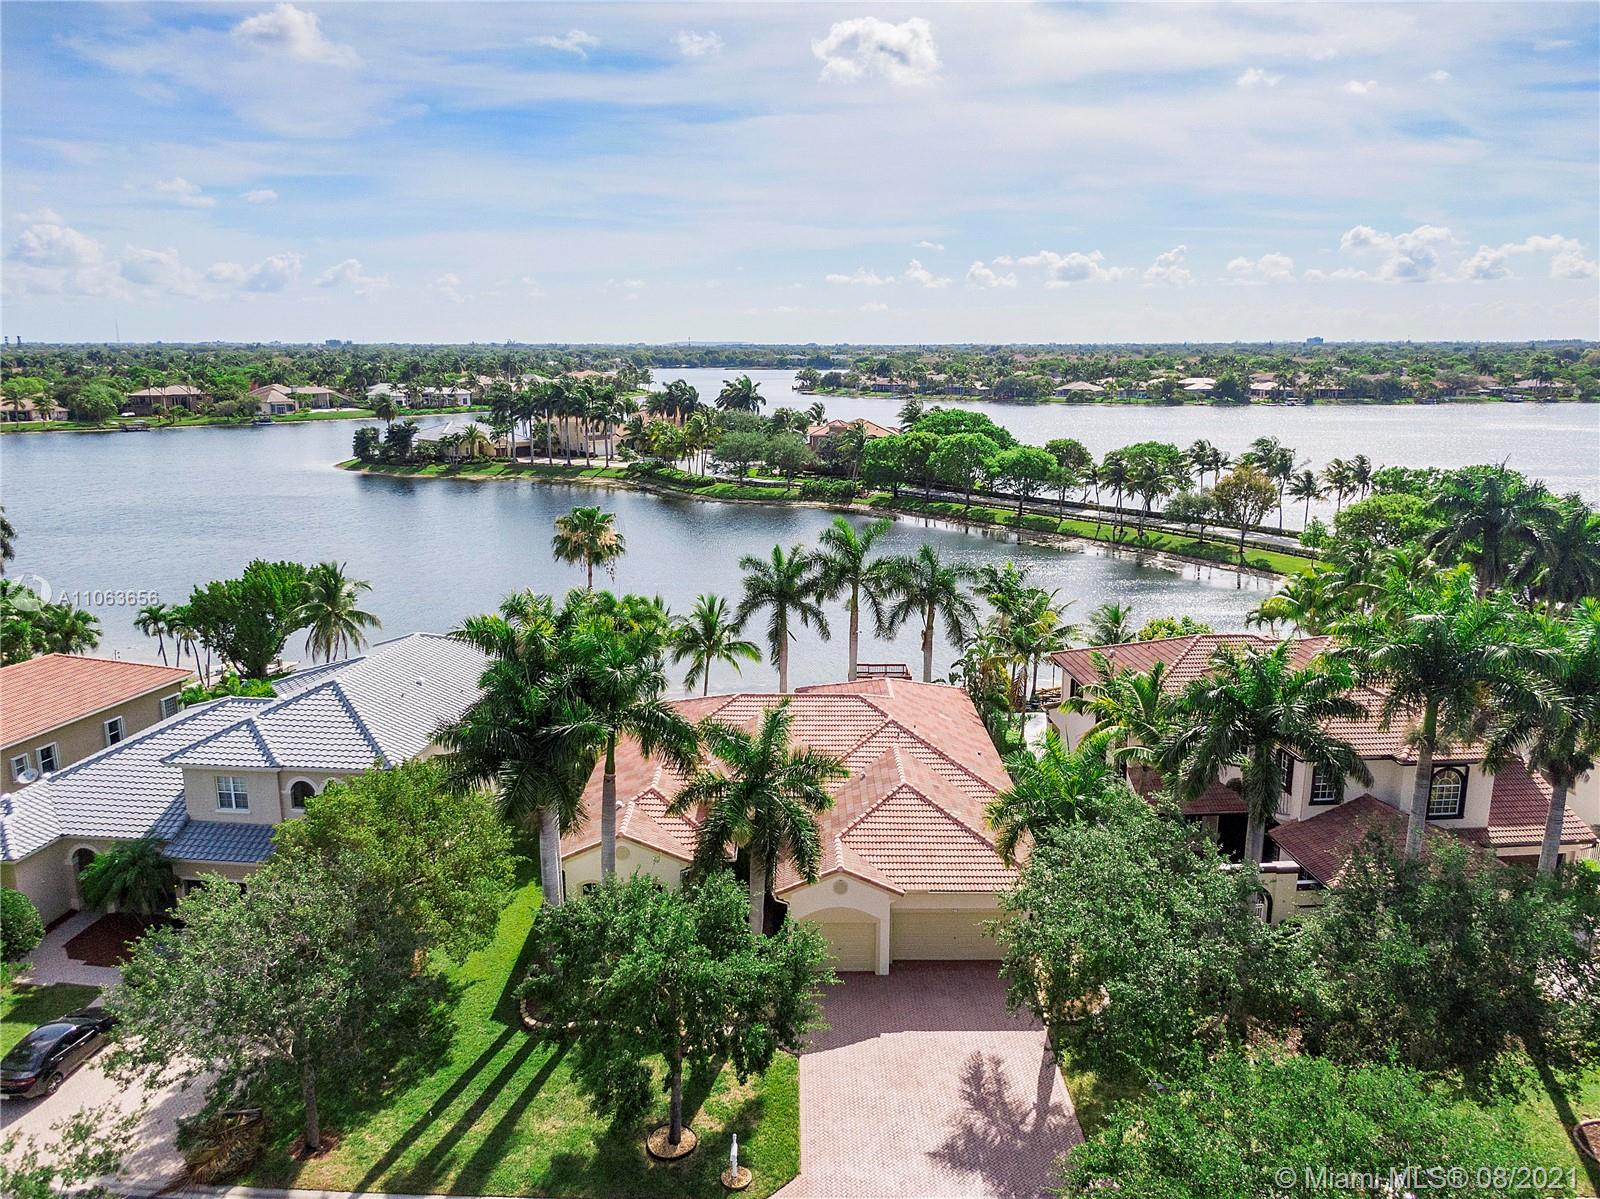 729 123rd Dr, Coral Springs, Florida 33071